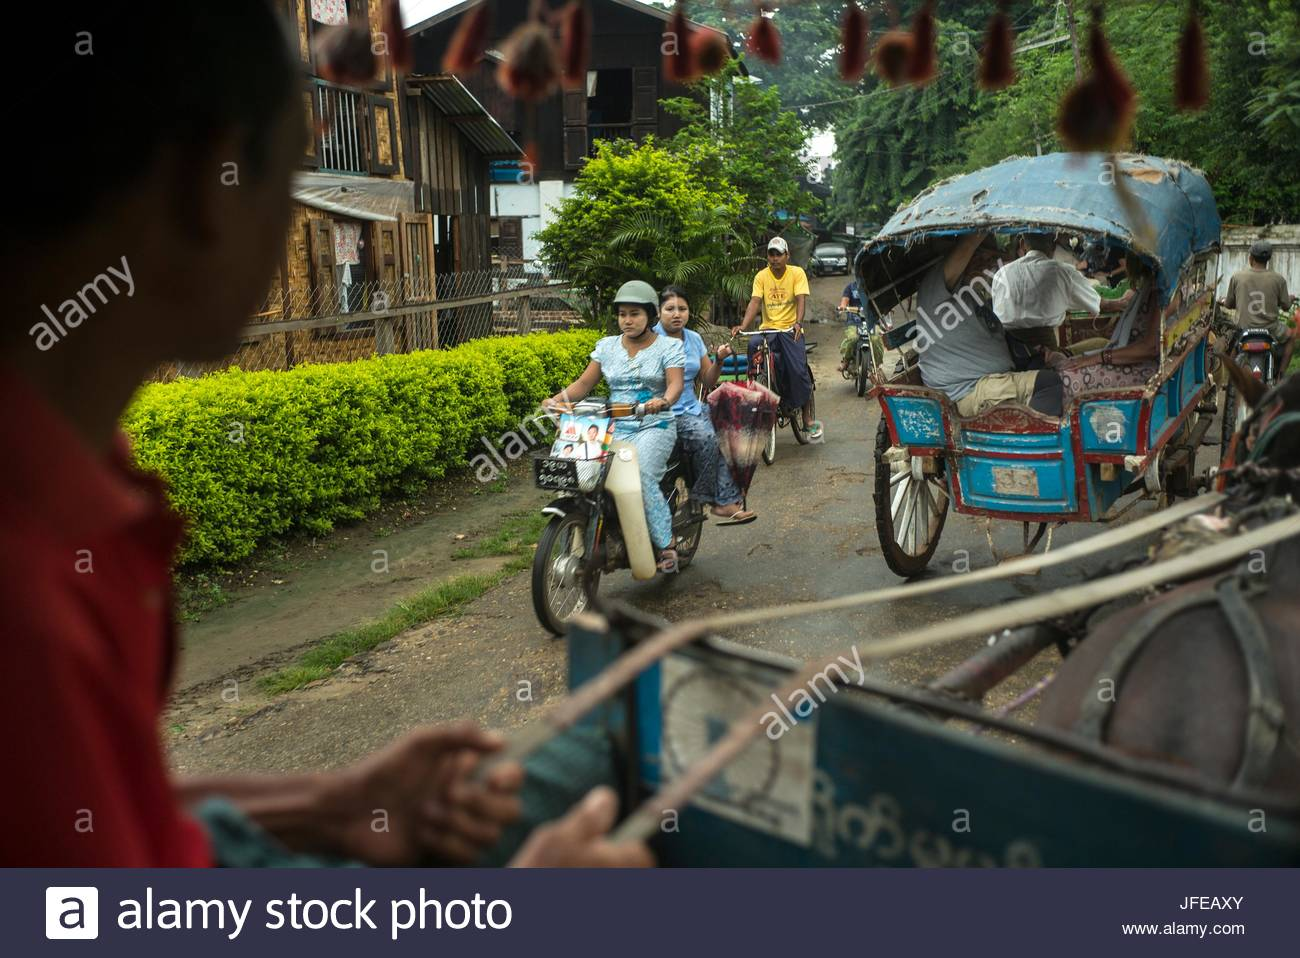 People ride on motorbikes and carriages through Katha, Myanmar. - Stock Image